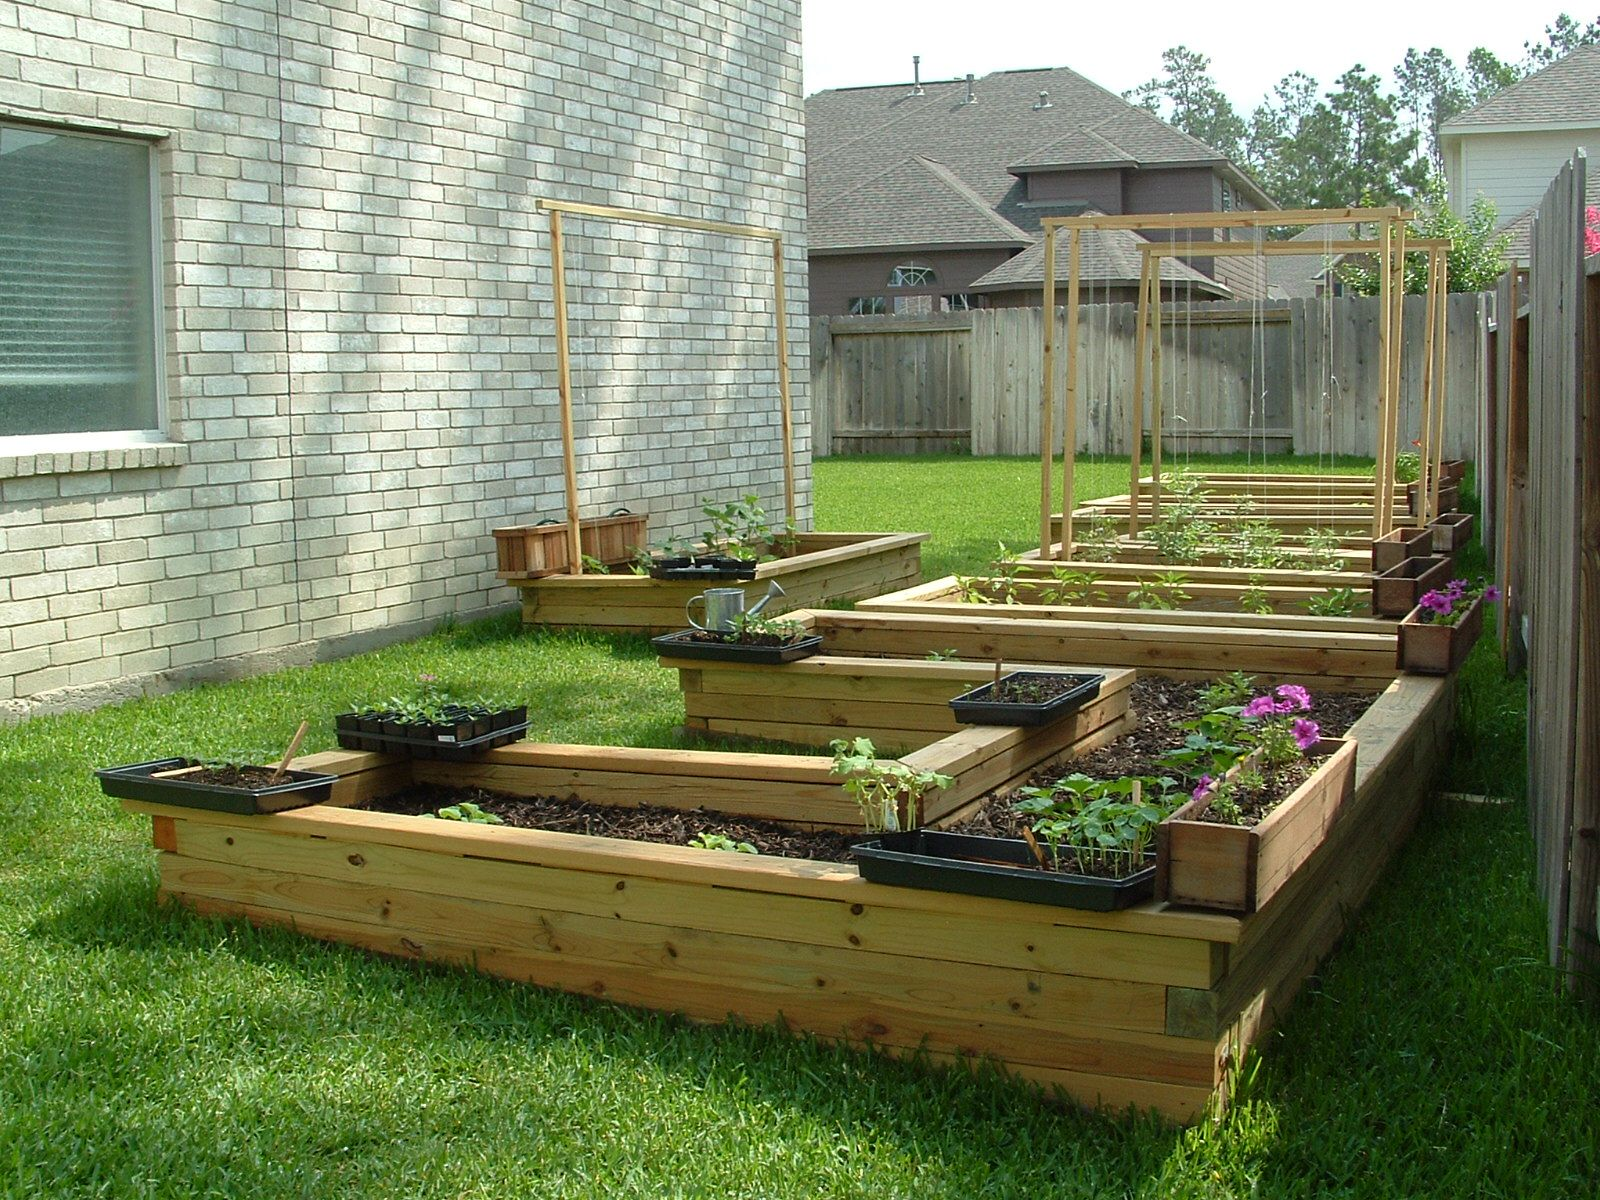 Designing A Vegetable Garden With Raised Beds full size of garden ideasbeautiful raised garden bed design raised garden bed ideas vegetables Find This Pin And More On Gardens